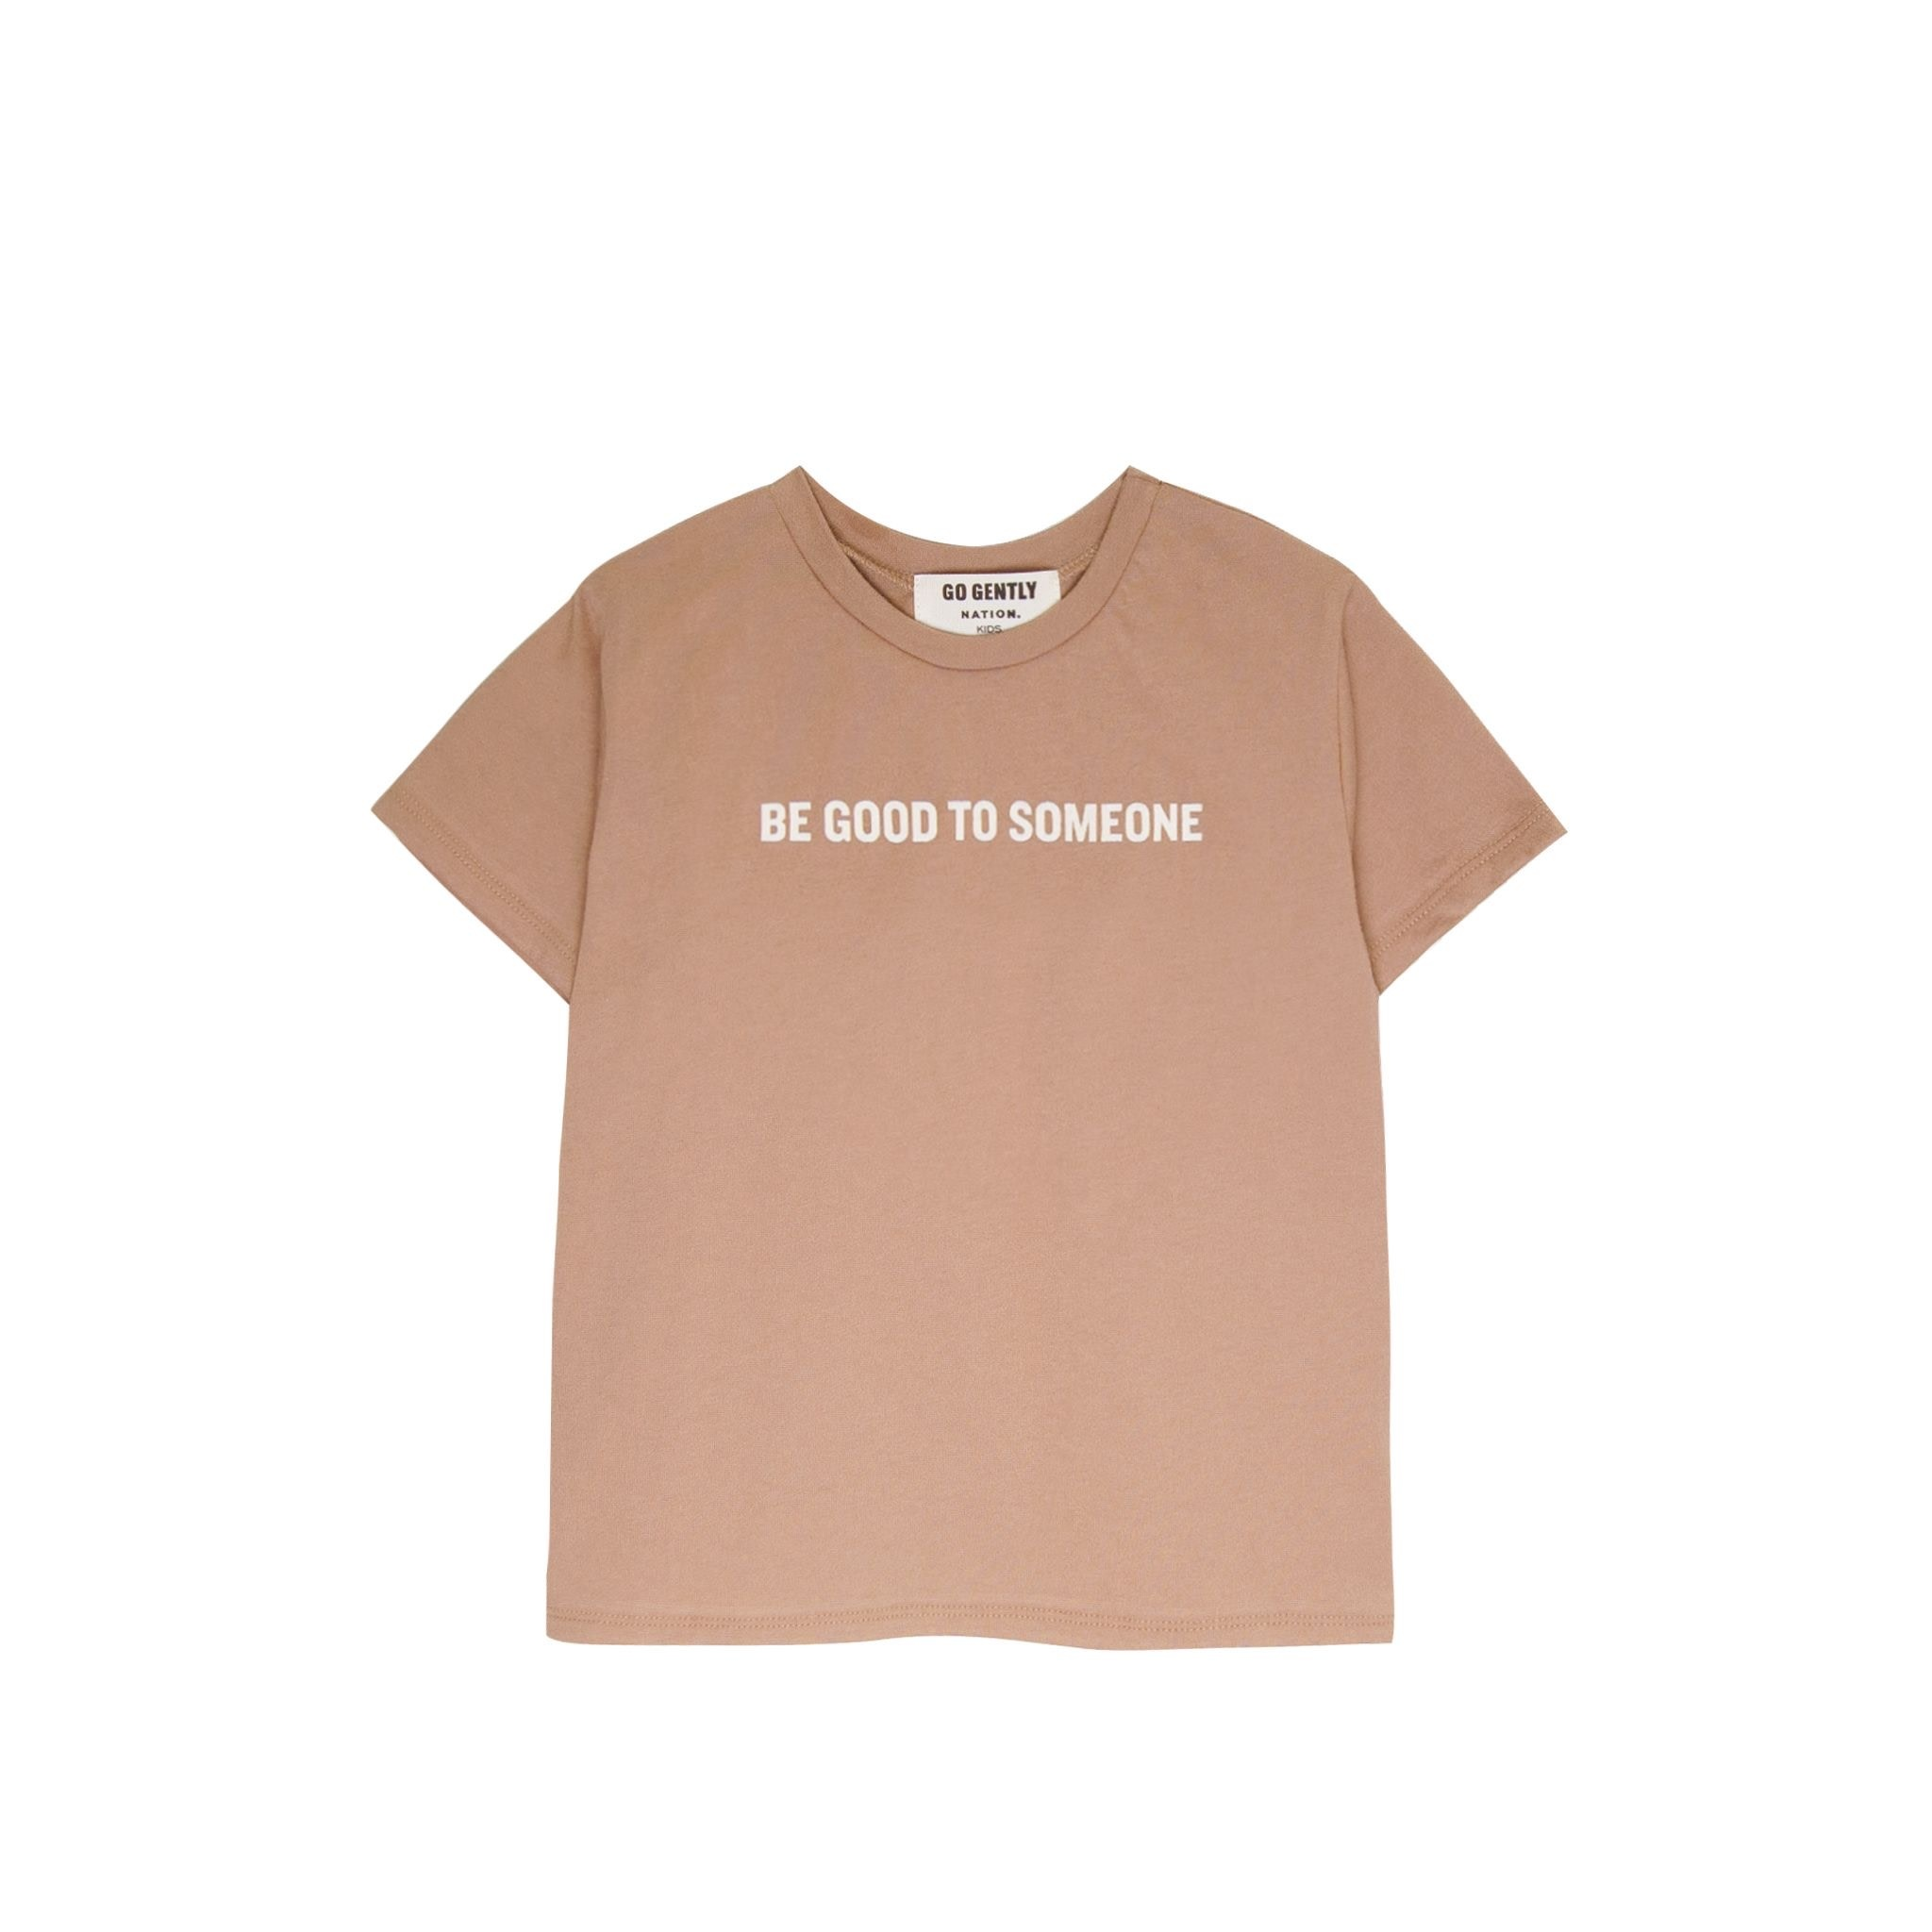 GOGENTLYNATION Be Good To Someone Tee